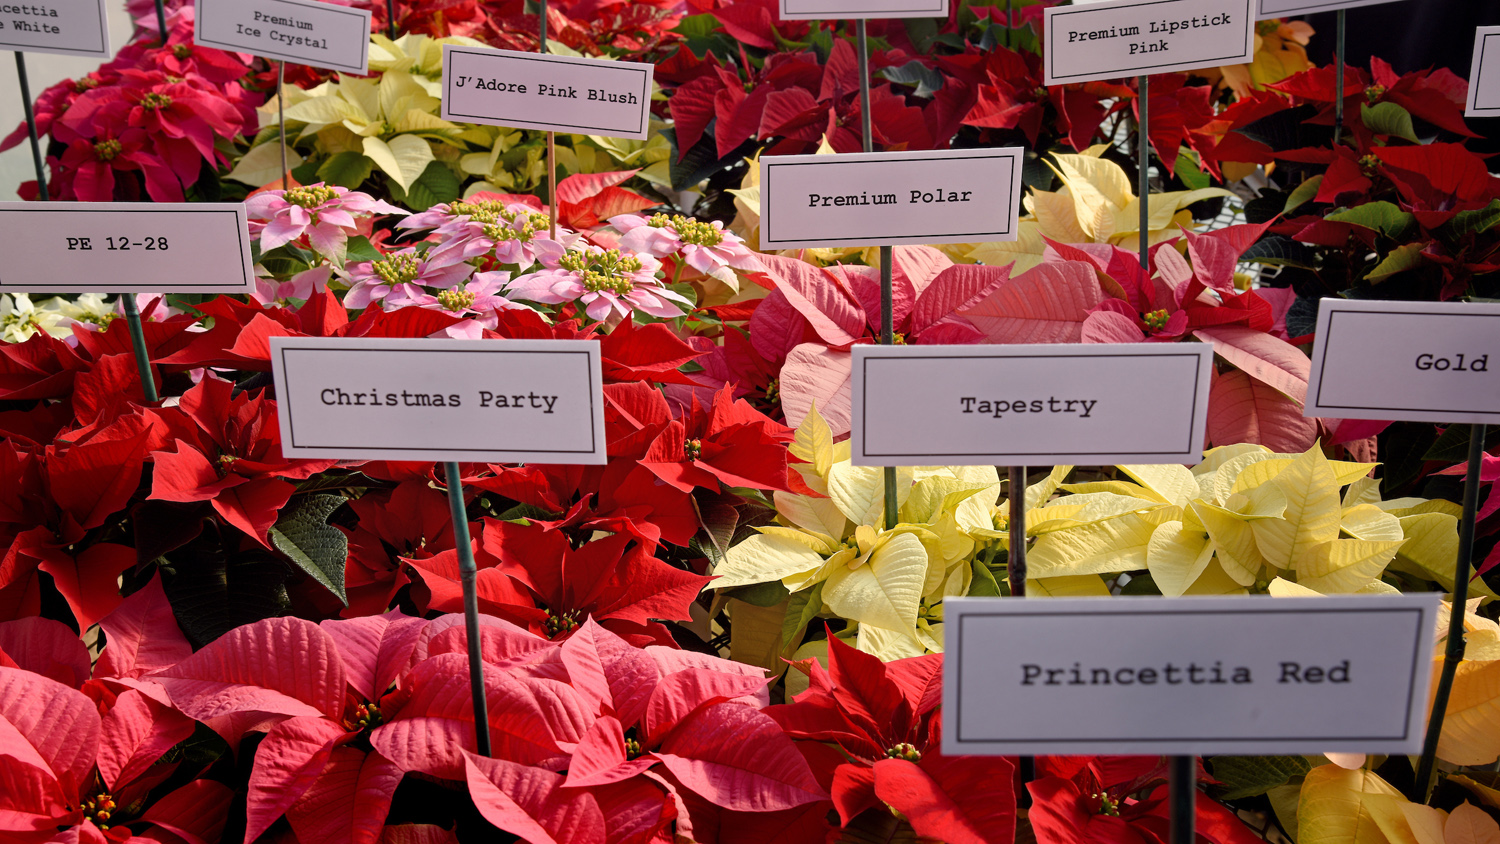 A variety of poinsettia plants at Poinsettia Field Day in a Raulston Arboretum greenhouse.